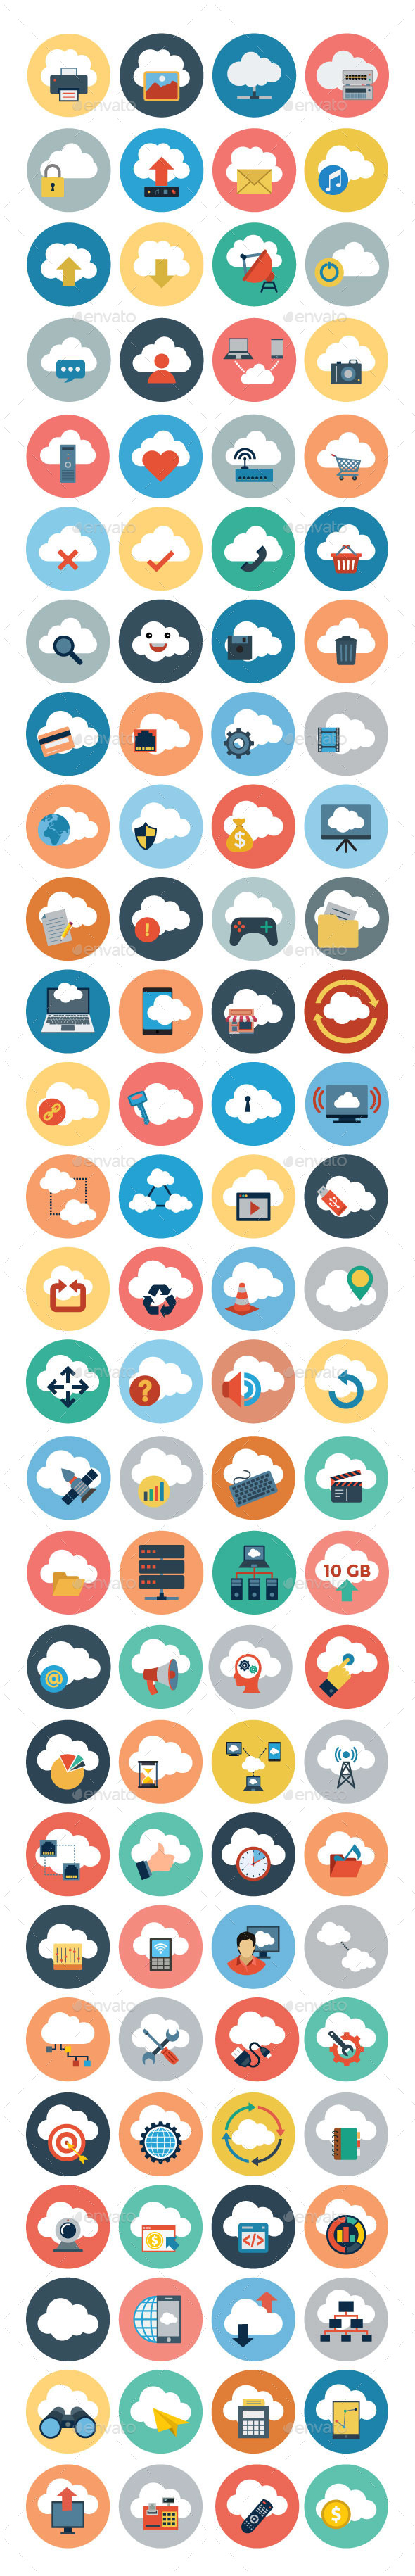 GraphicRiver 100& Cloud Computing Flat Icons 10839871